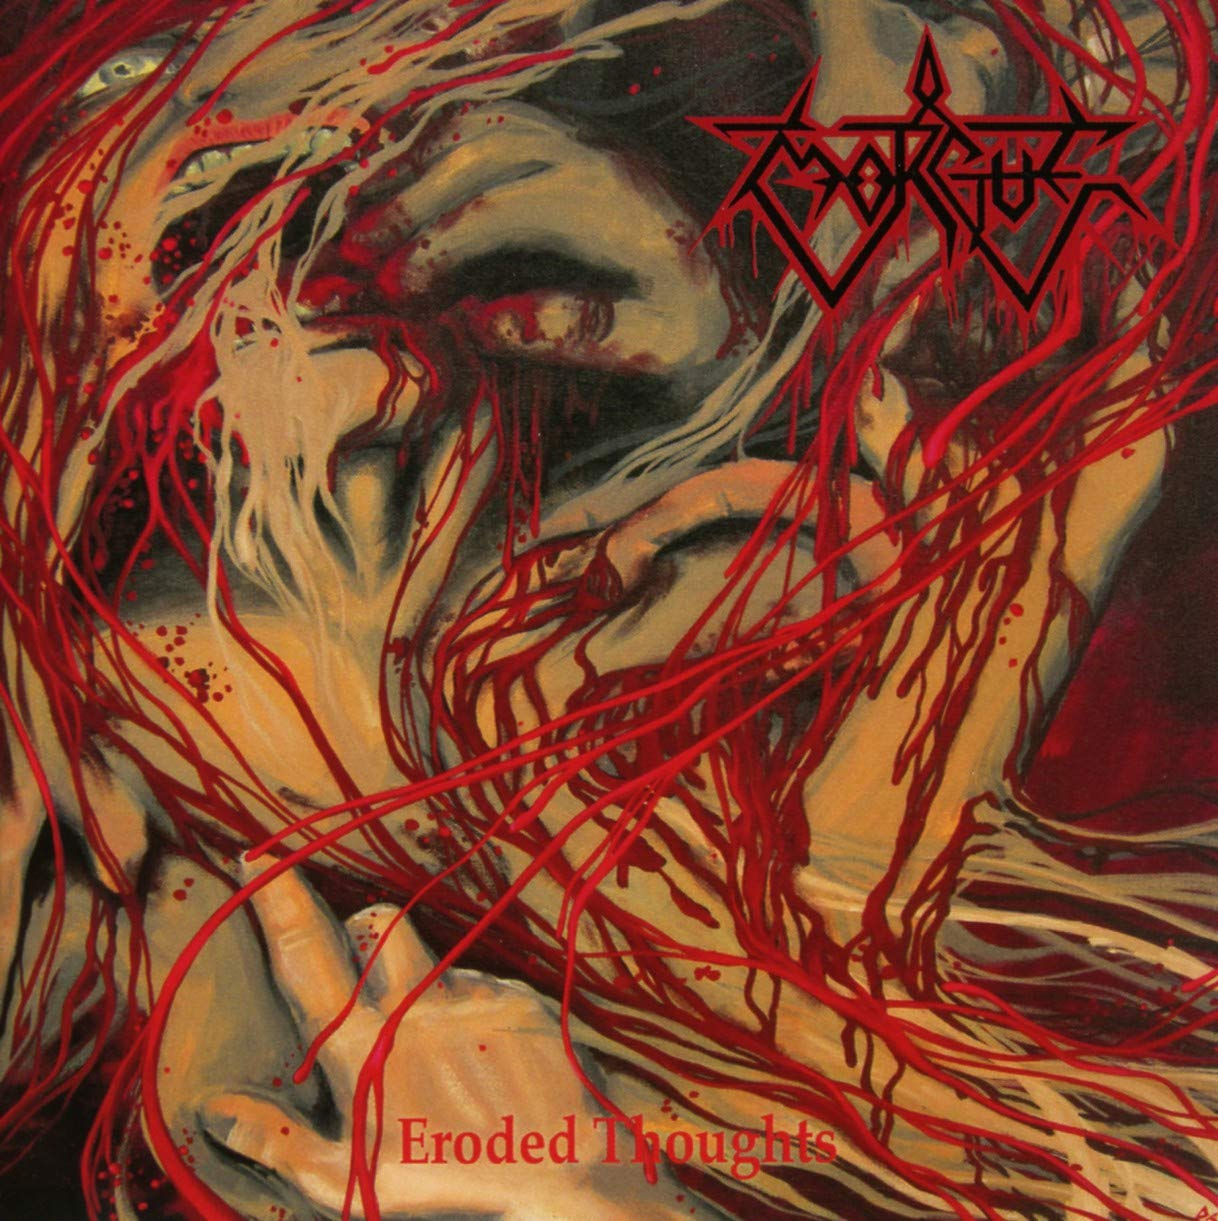 Morgue - Eroded Thoughts - Amazon.com Music